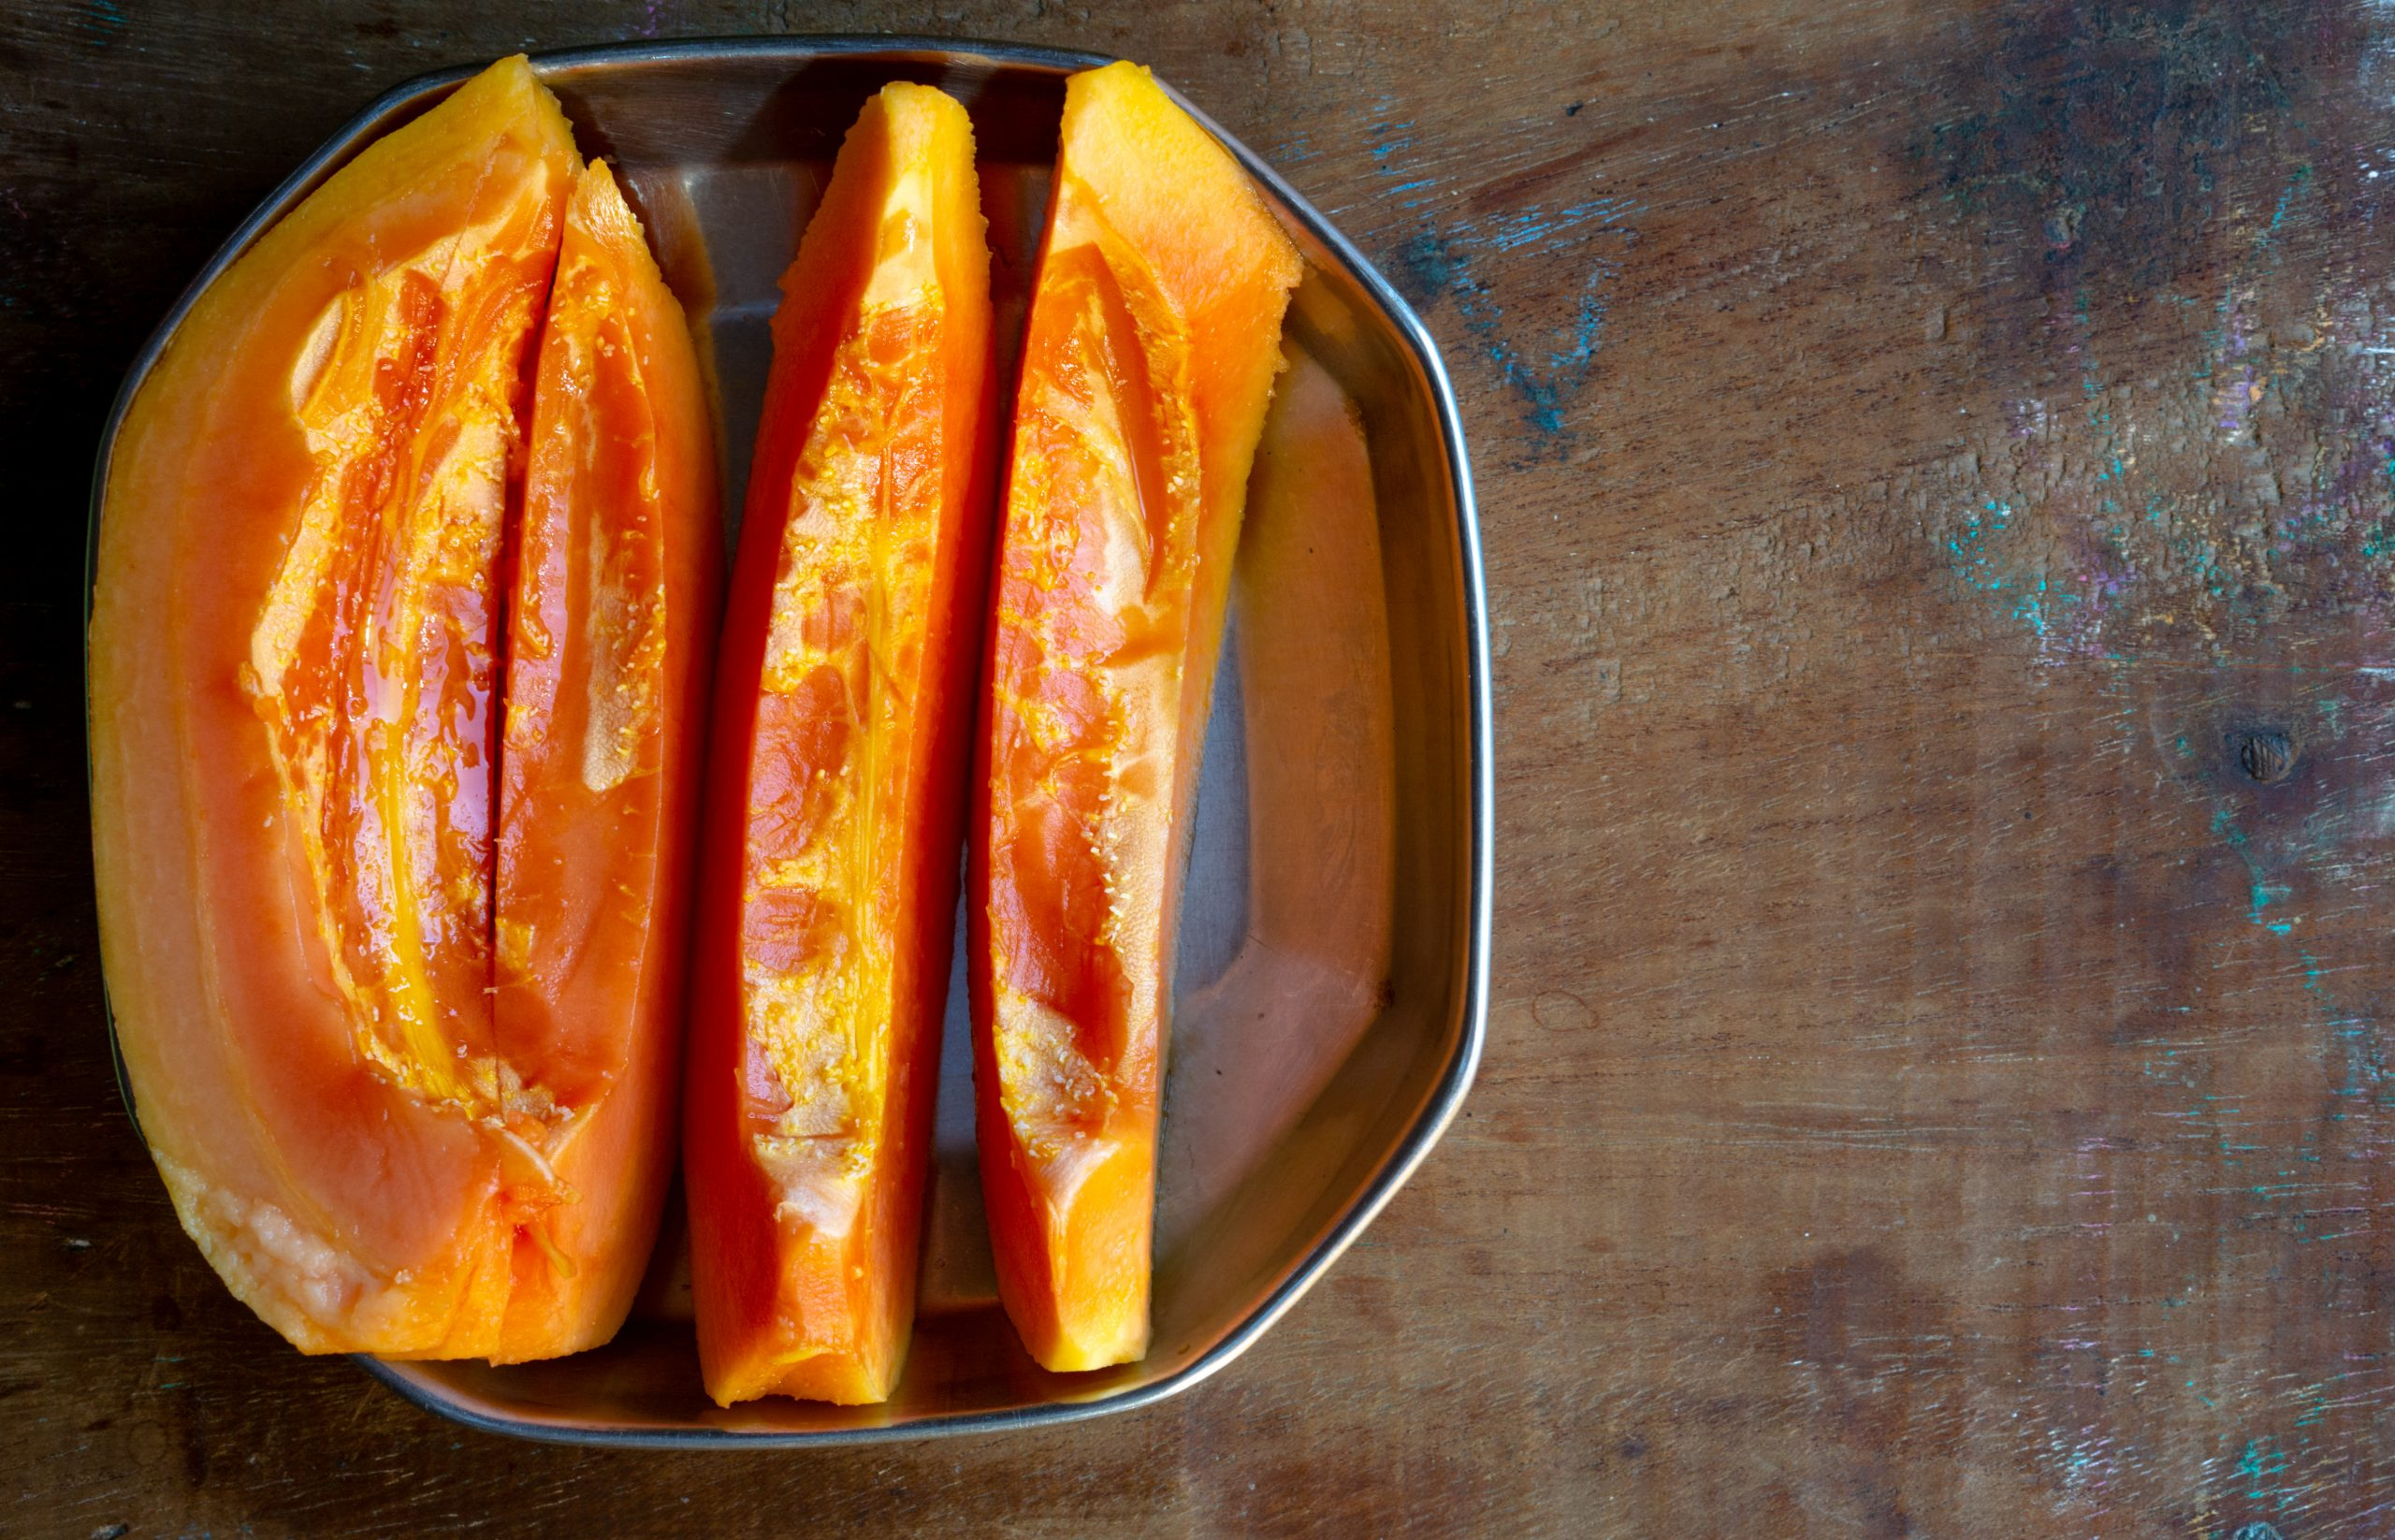 Papaya pieces in plate